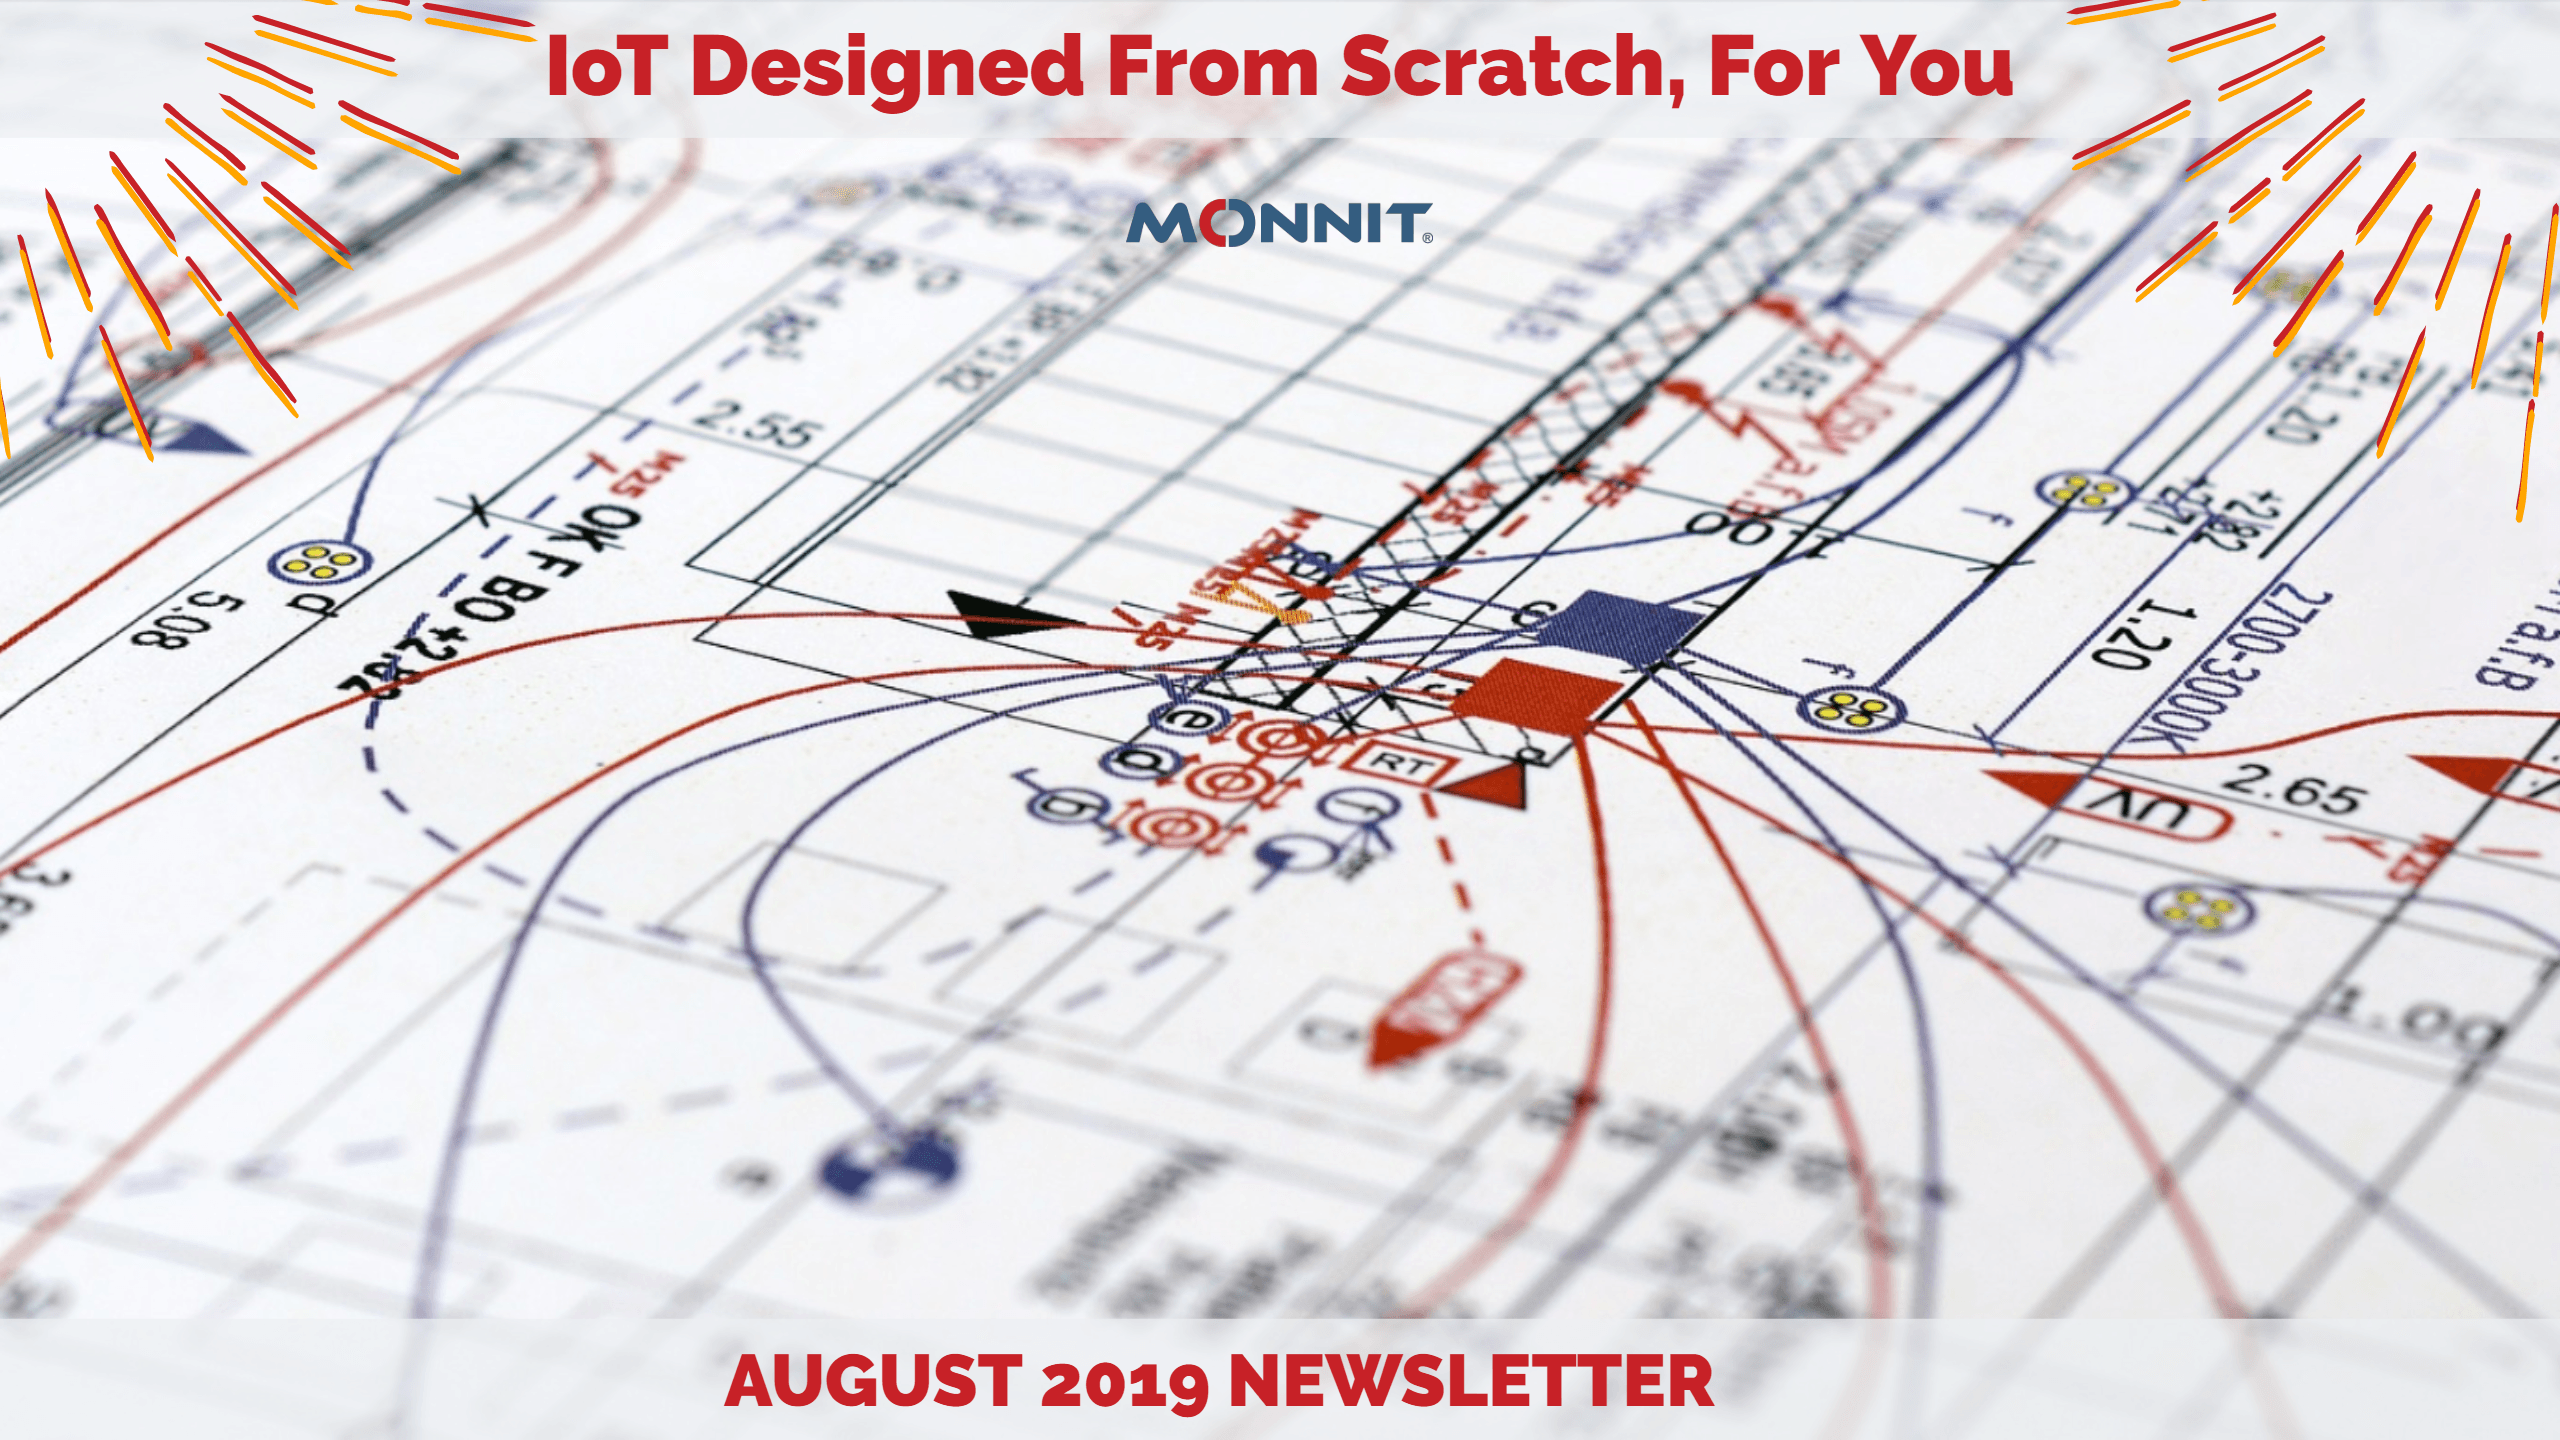 Monnit Monthly Newsletter - August 2019